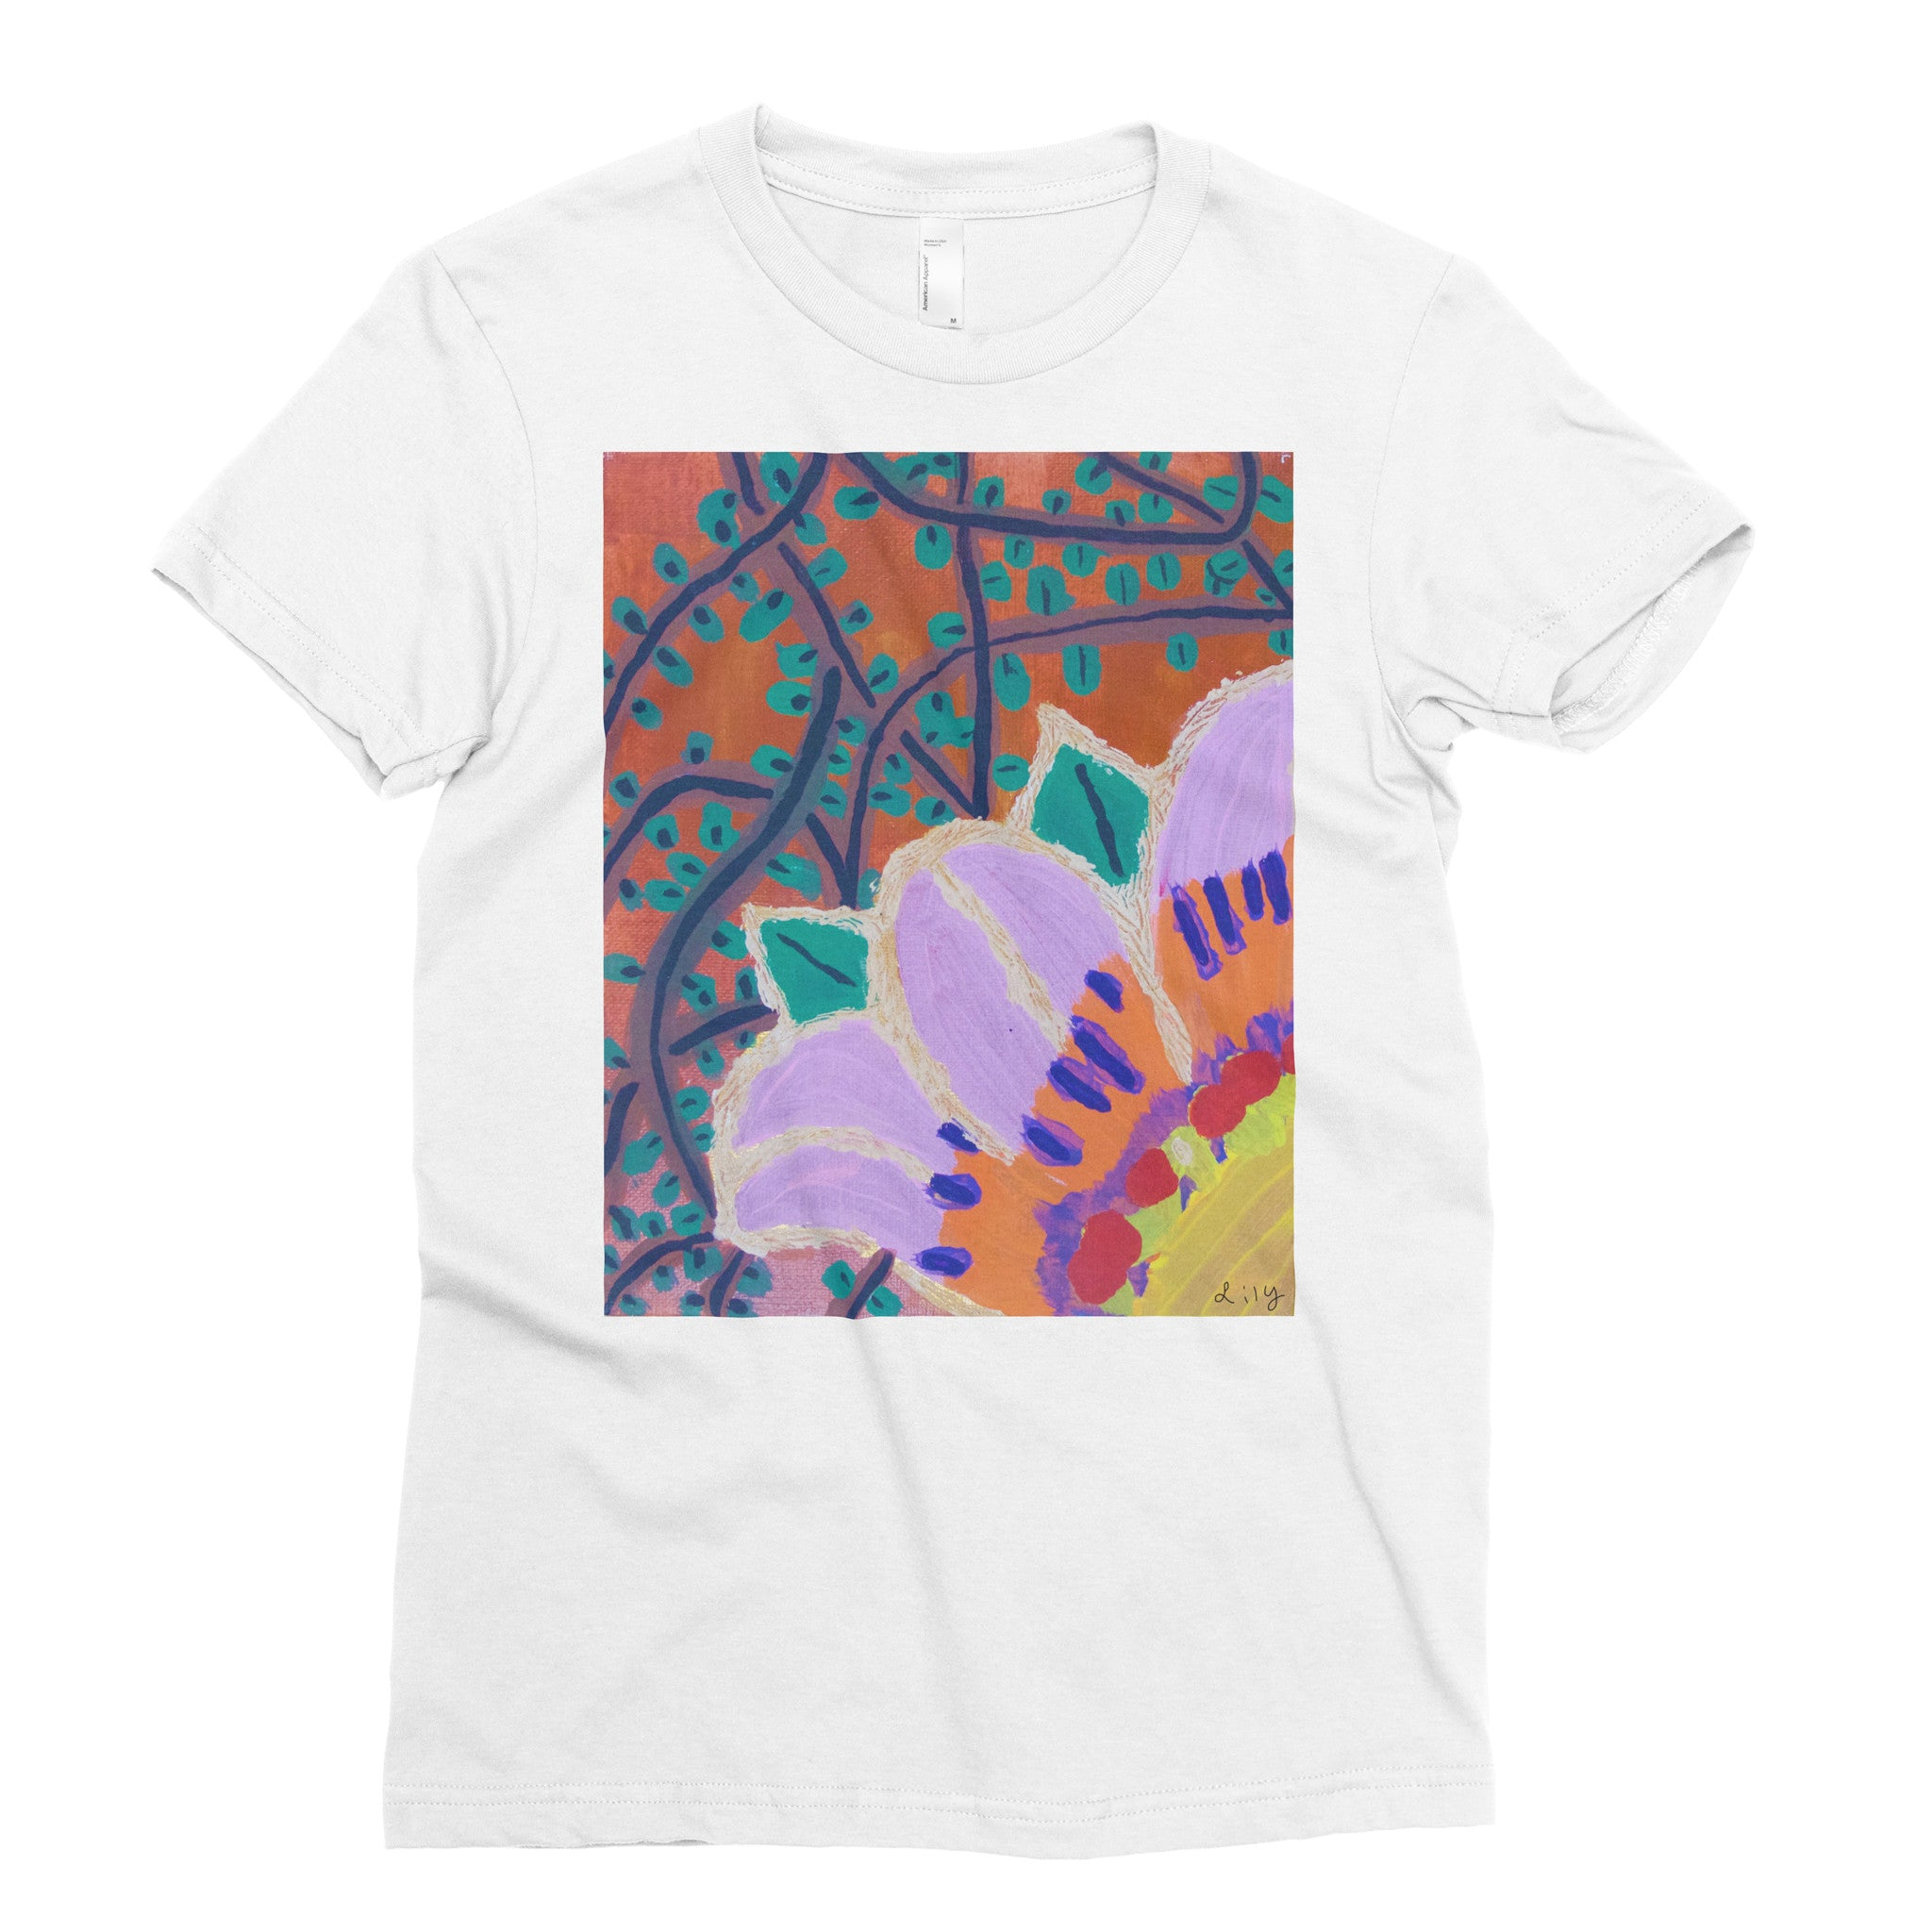 Lily, 3rd grade - Adult T-shirt - Rightside Shirts - 1